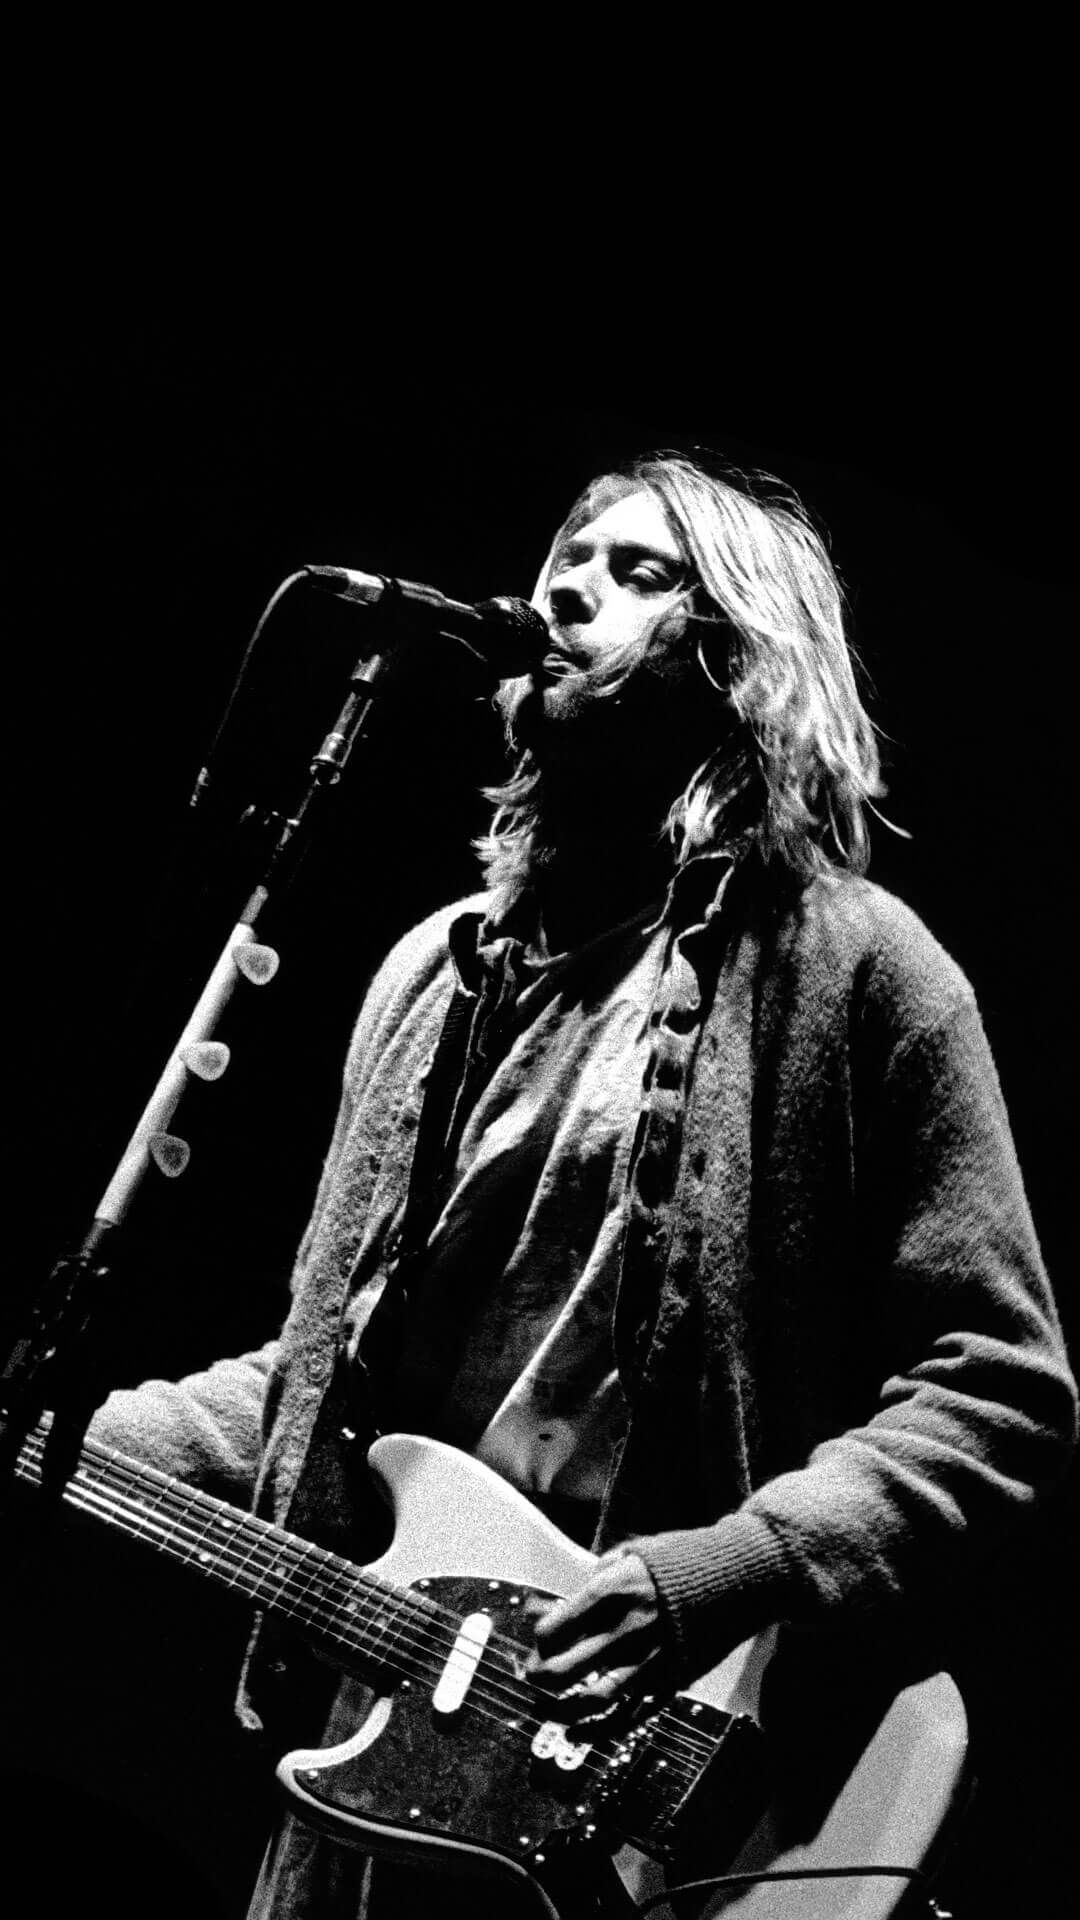 Kurt Cobain Wallpaper Ideas – Decides on the Right Background for Your Wallspace